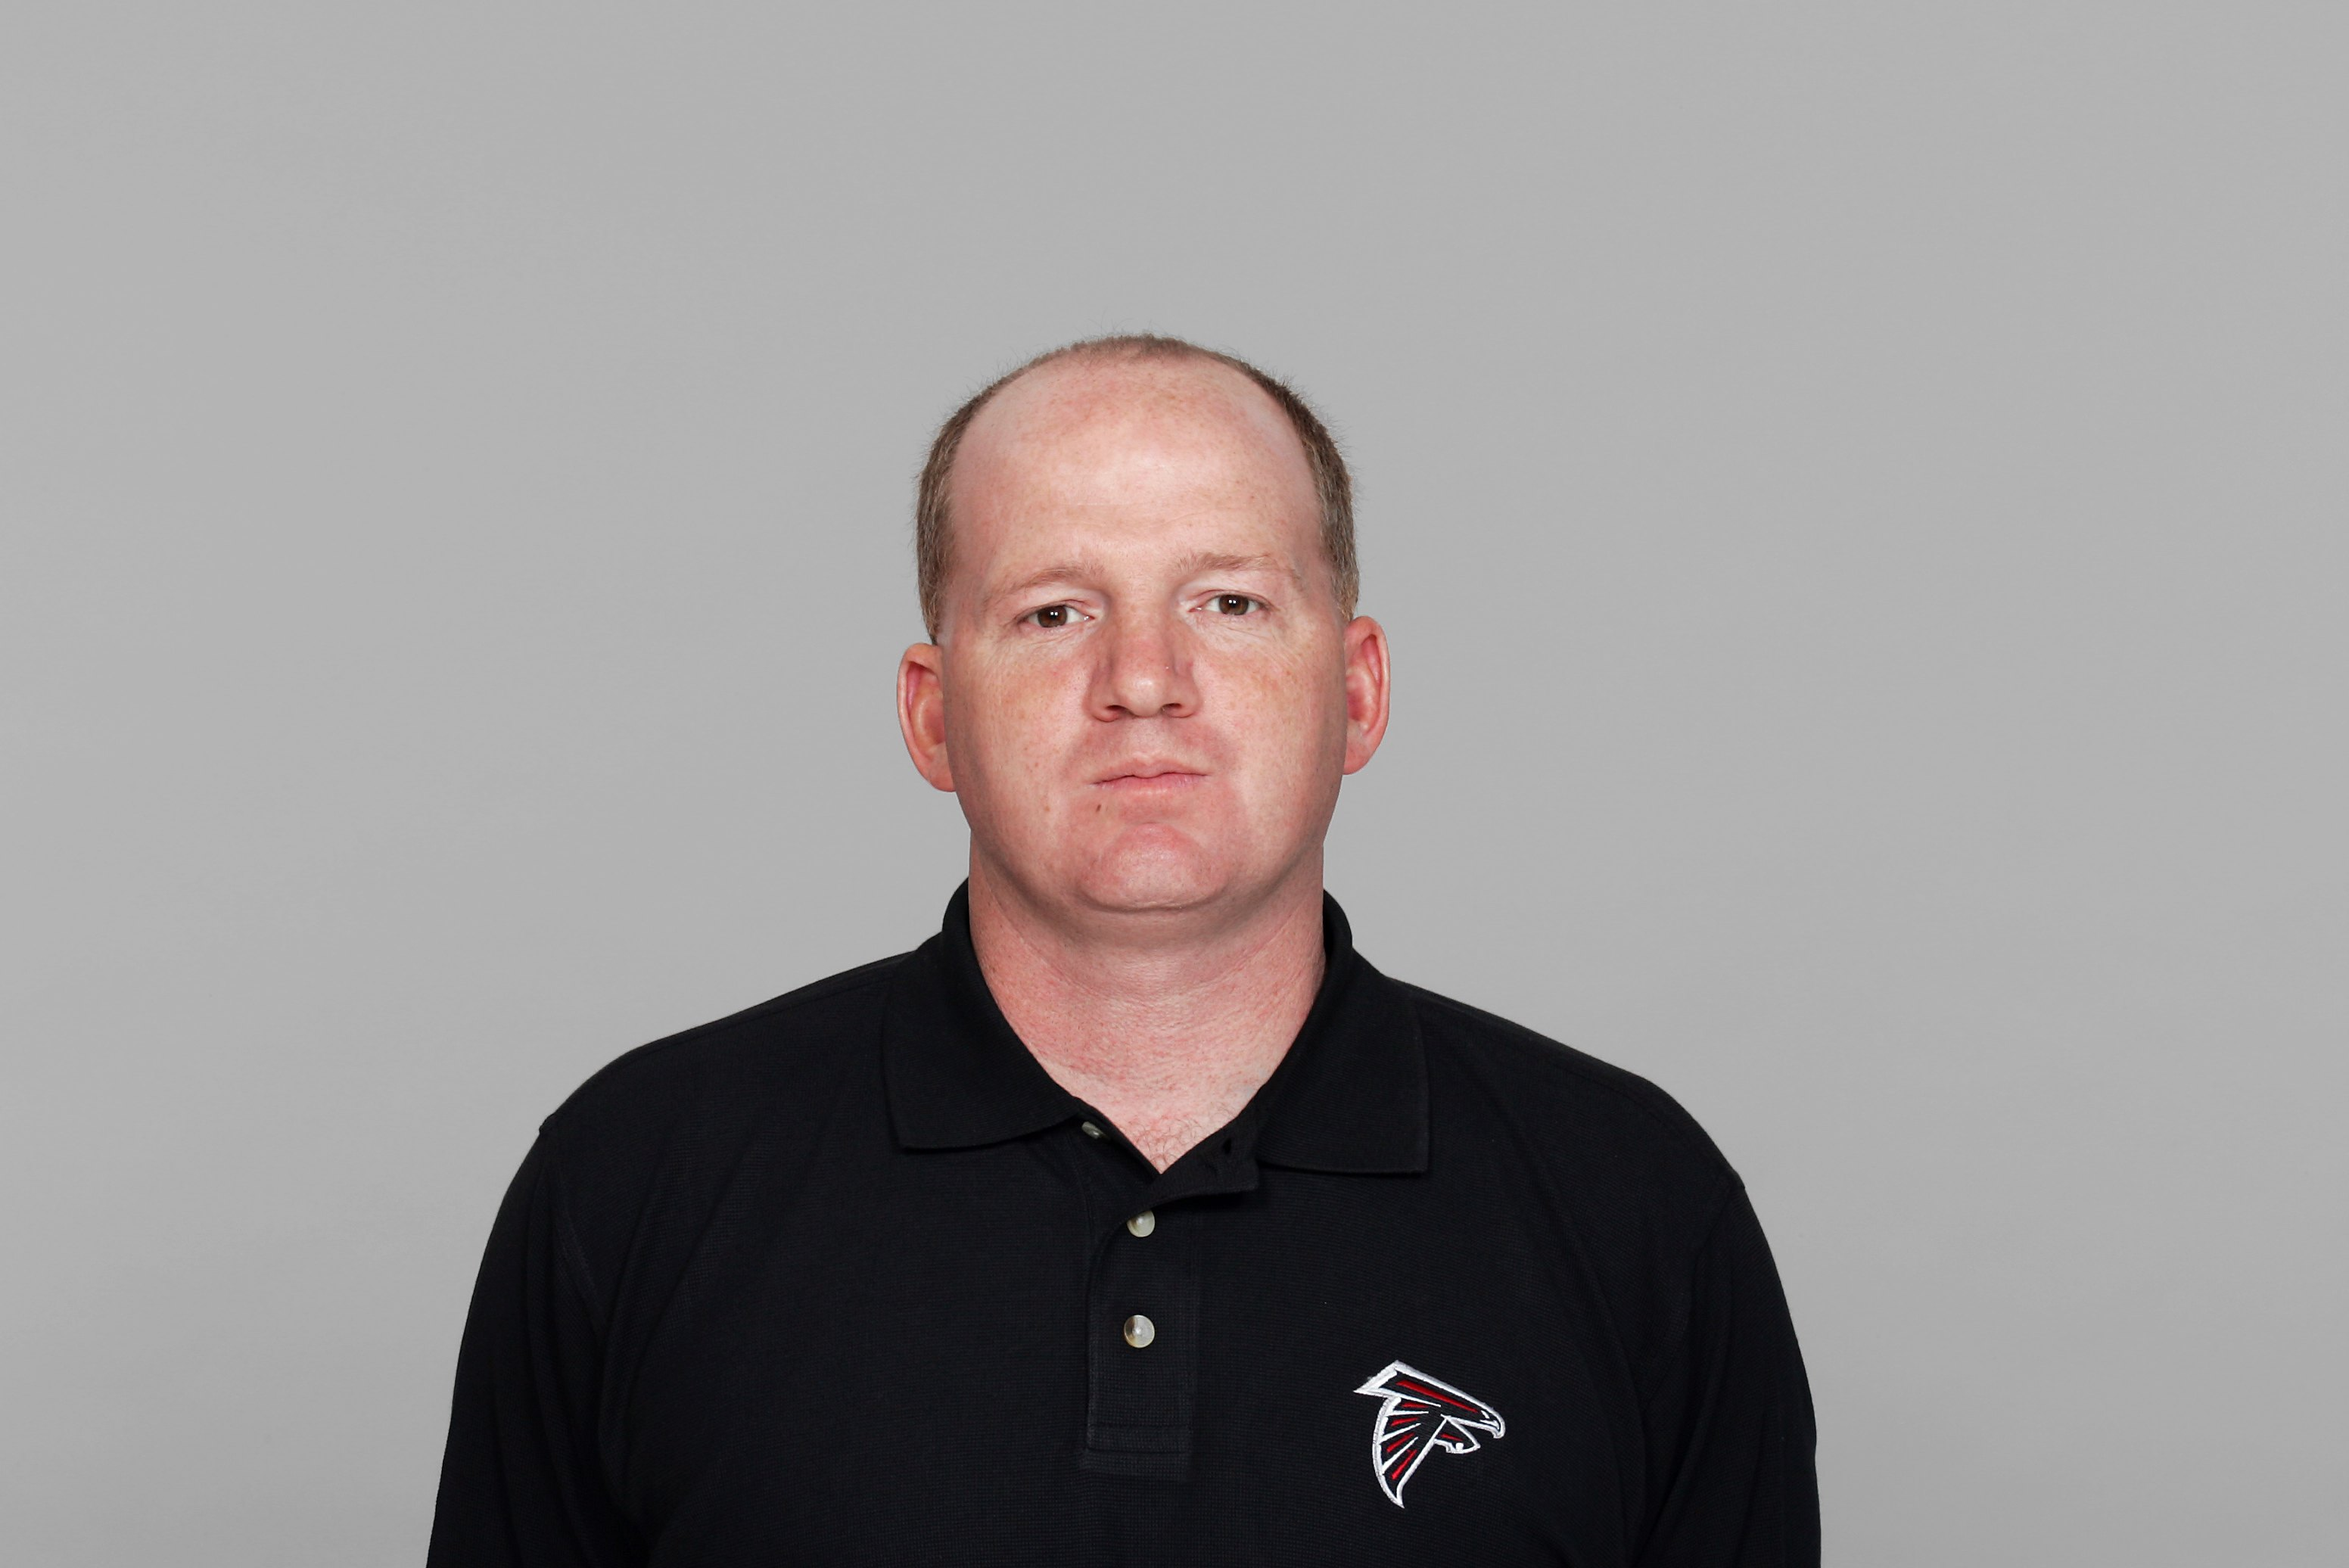 ATLANTA - 2007:  Paul Petrino of the Atlanta Falcons poses for his 2007 NFL headshot at photo day in Atlanta, Georgia.  (Photo by Getty Images)